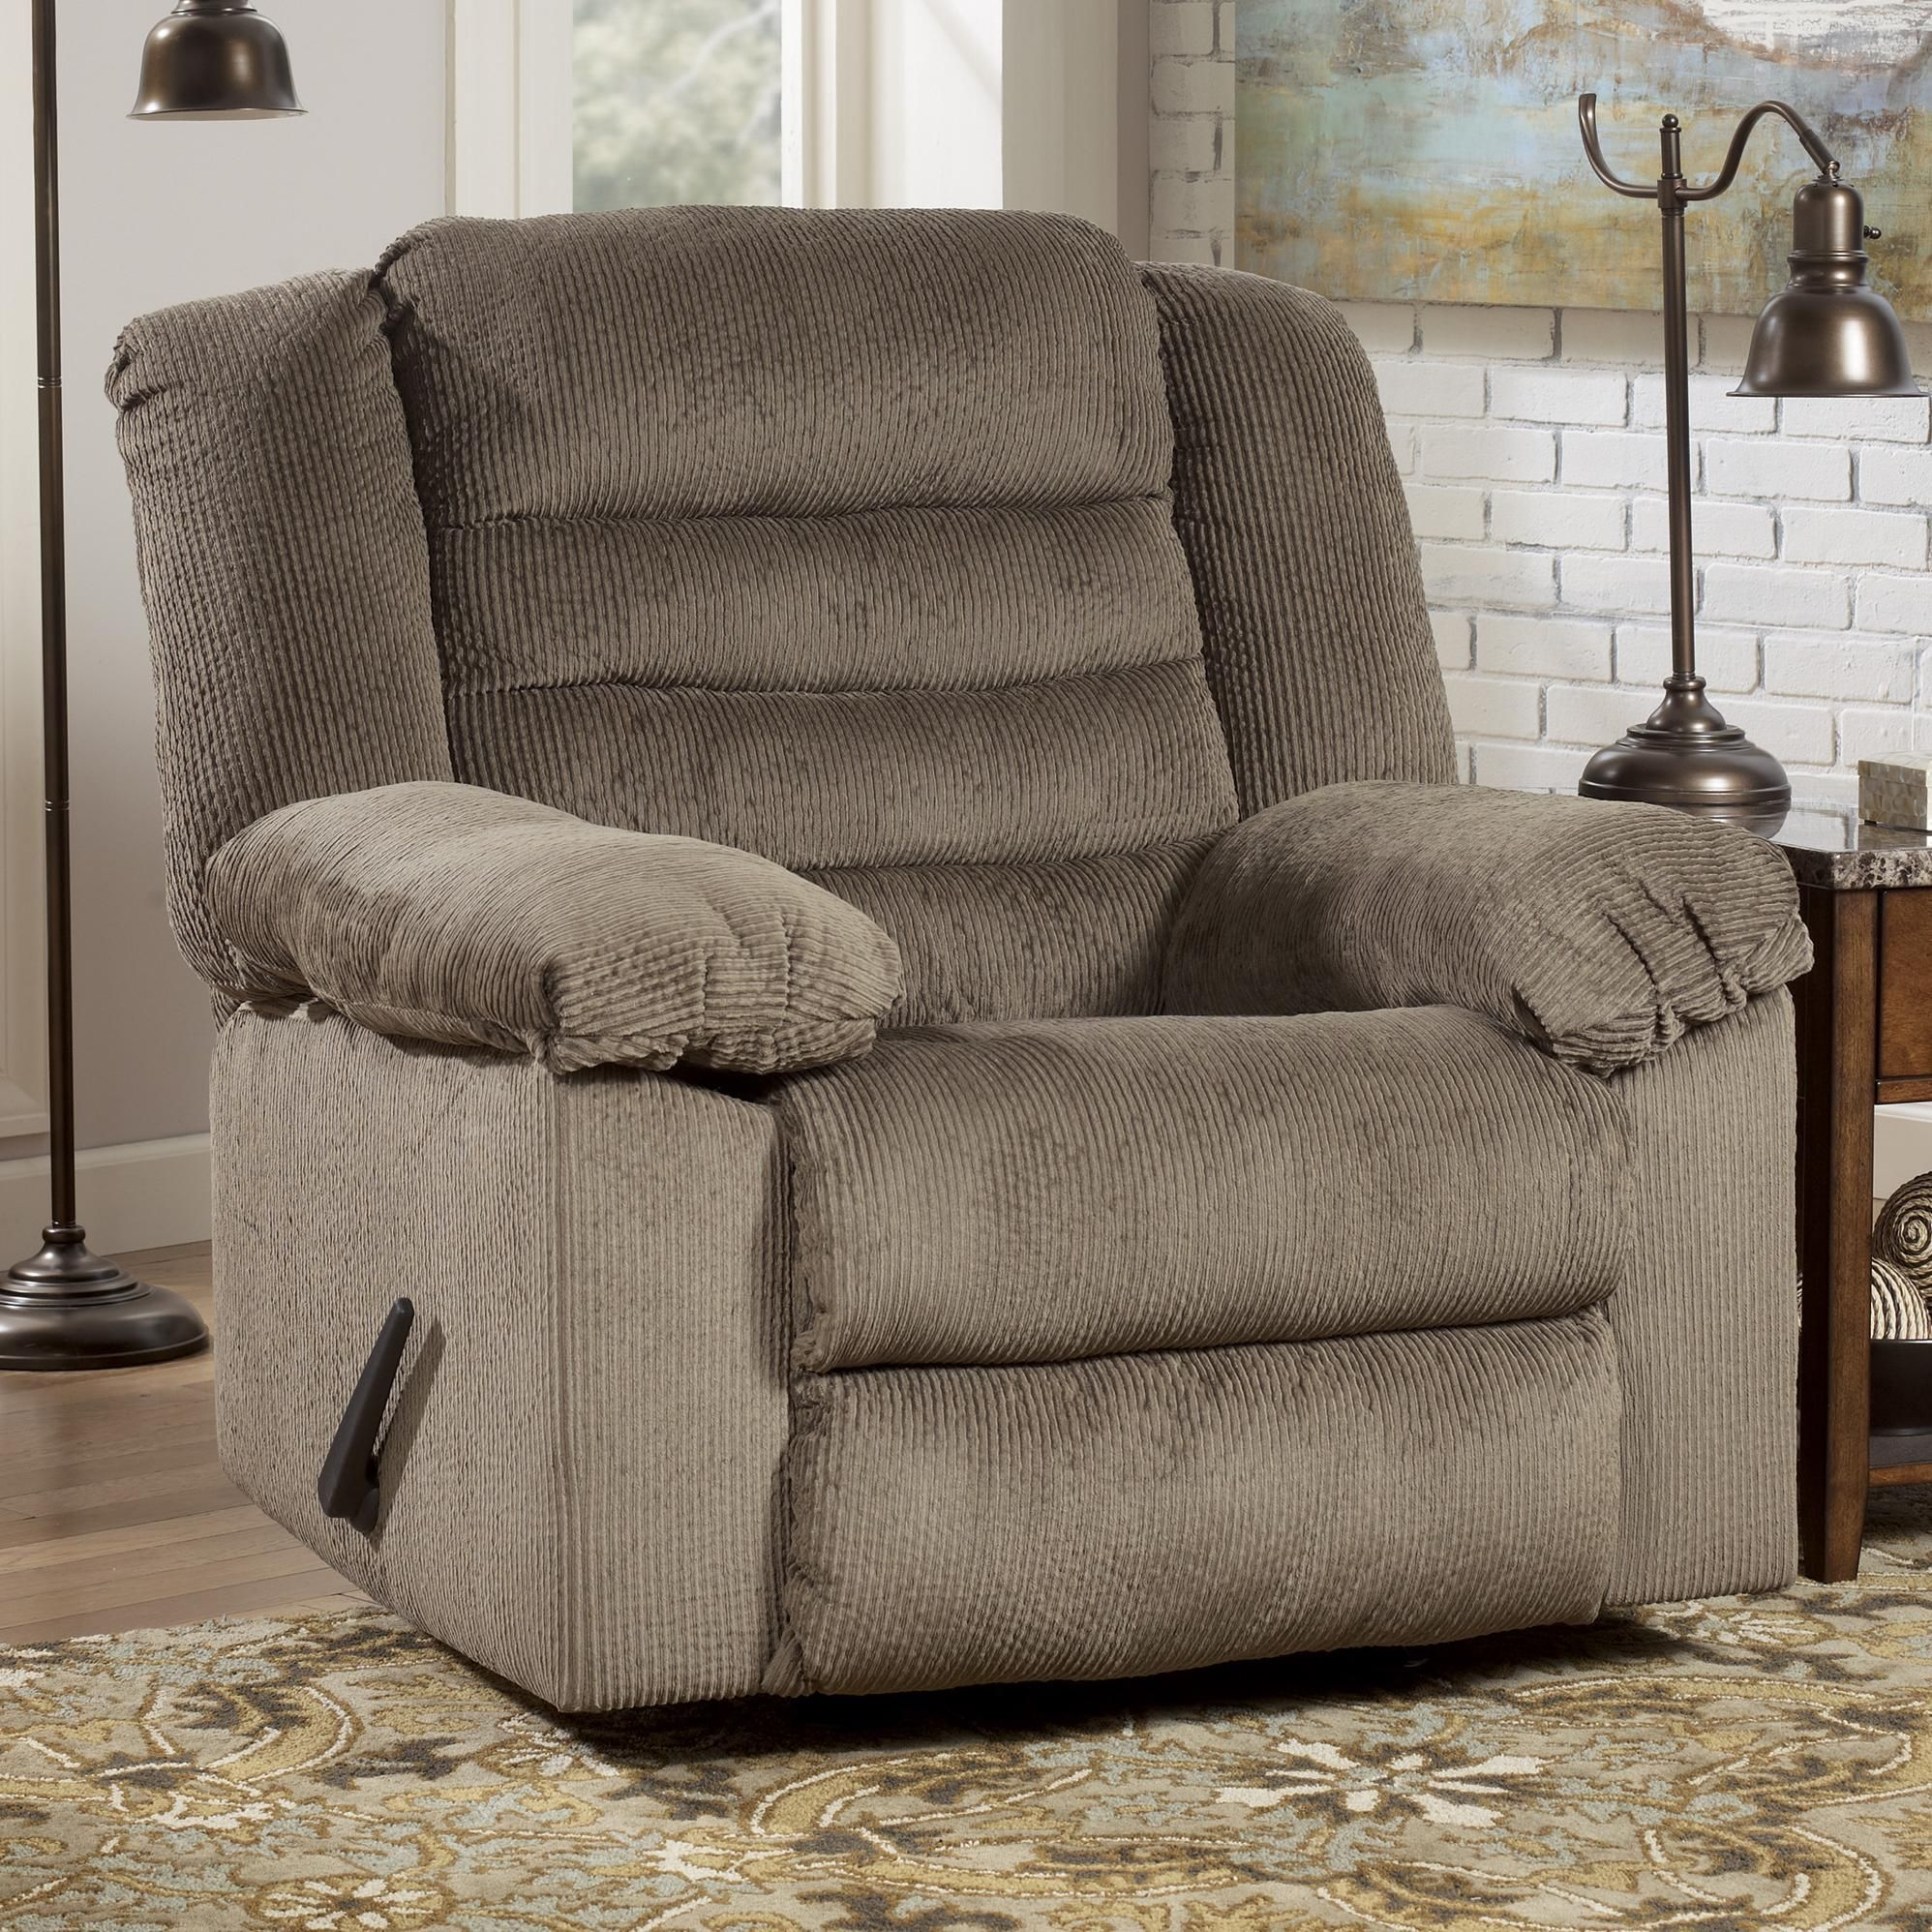 Ashley Furniture Roseville: Taupe Rocker Recliner With Heat And Massage